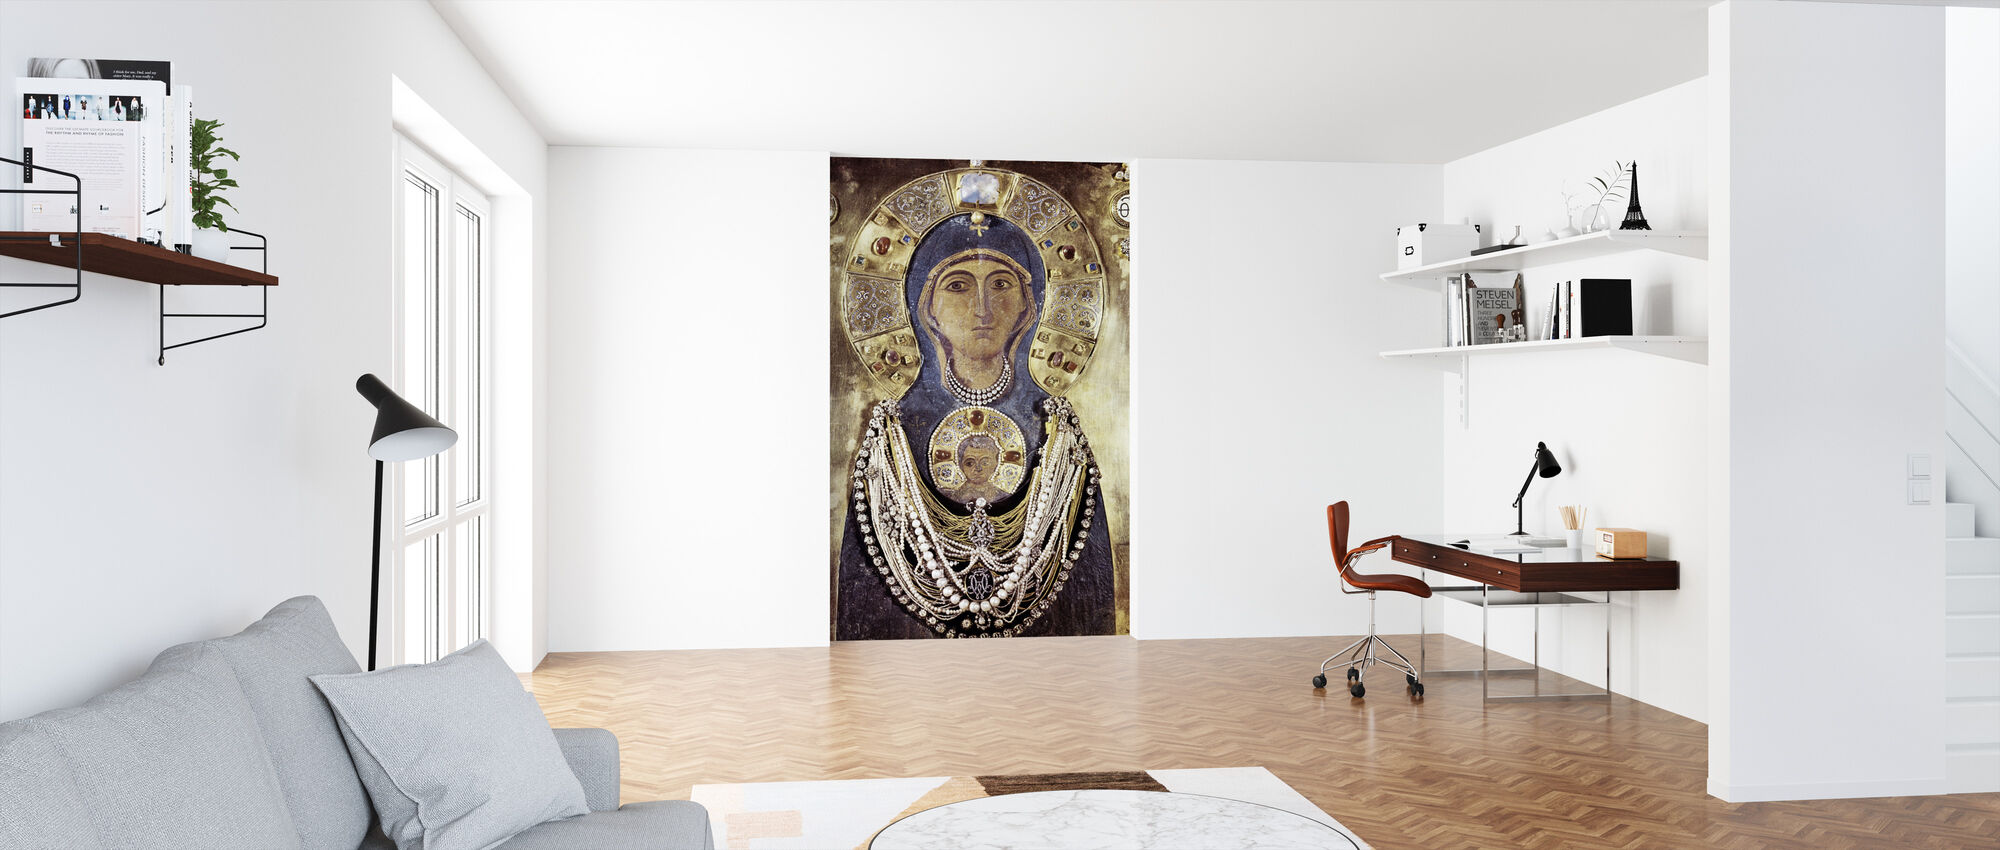 Madonna Icons - Wallpaper - Office